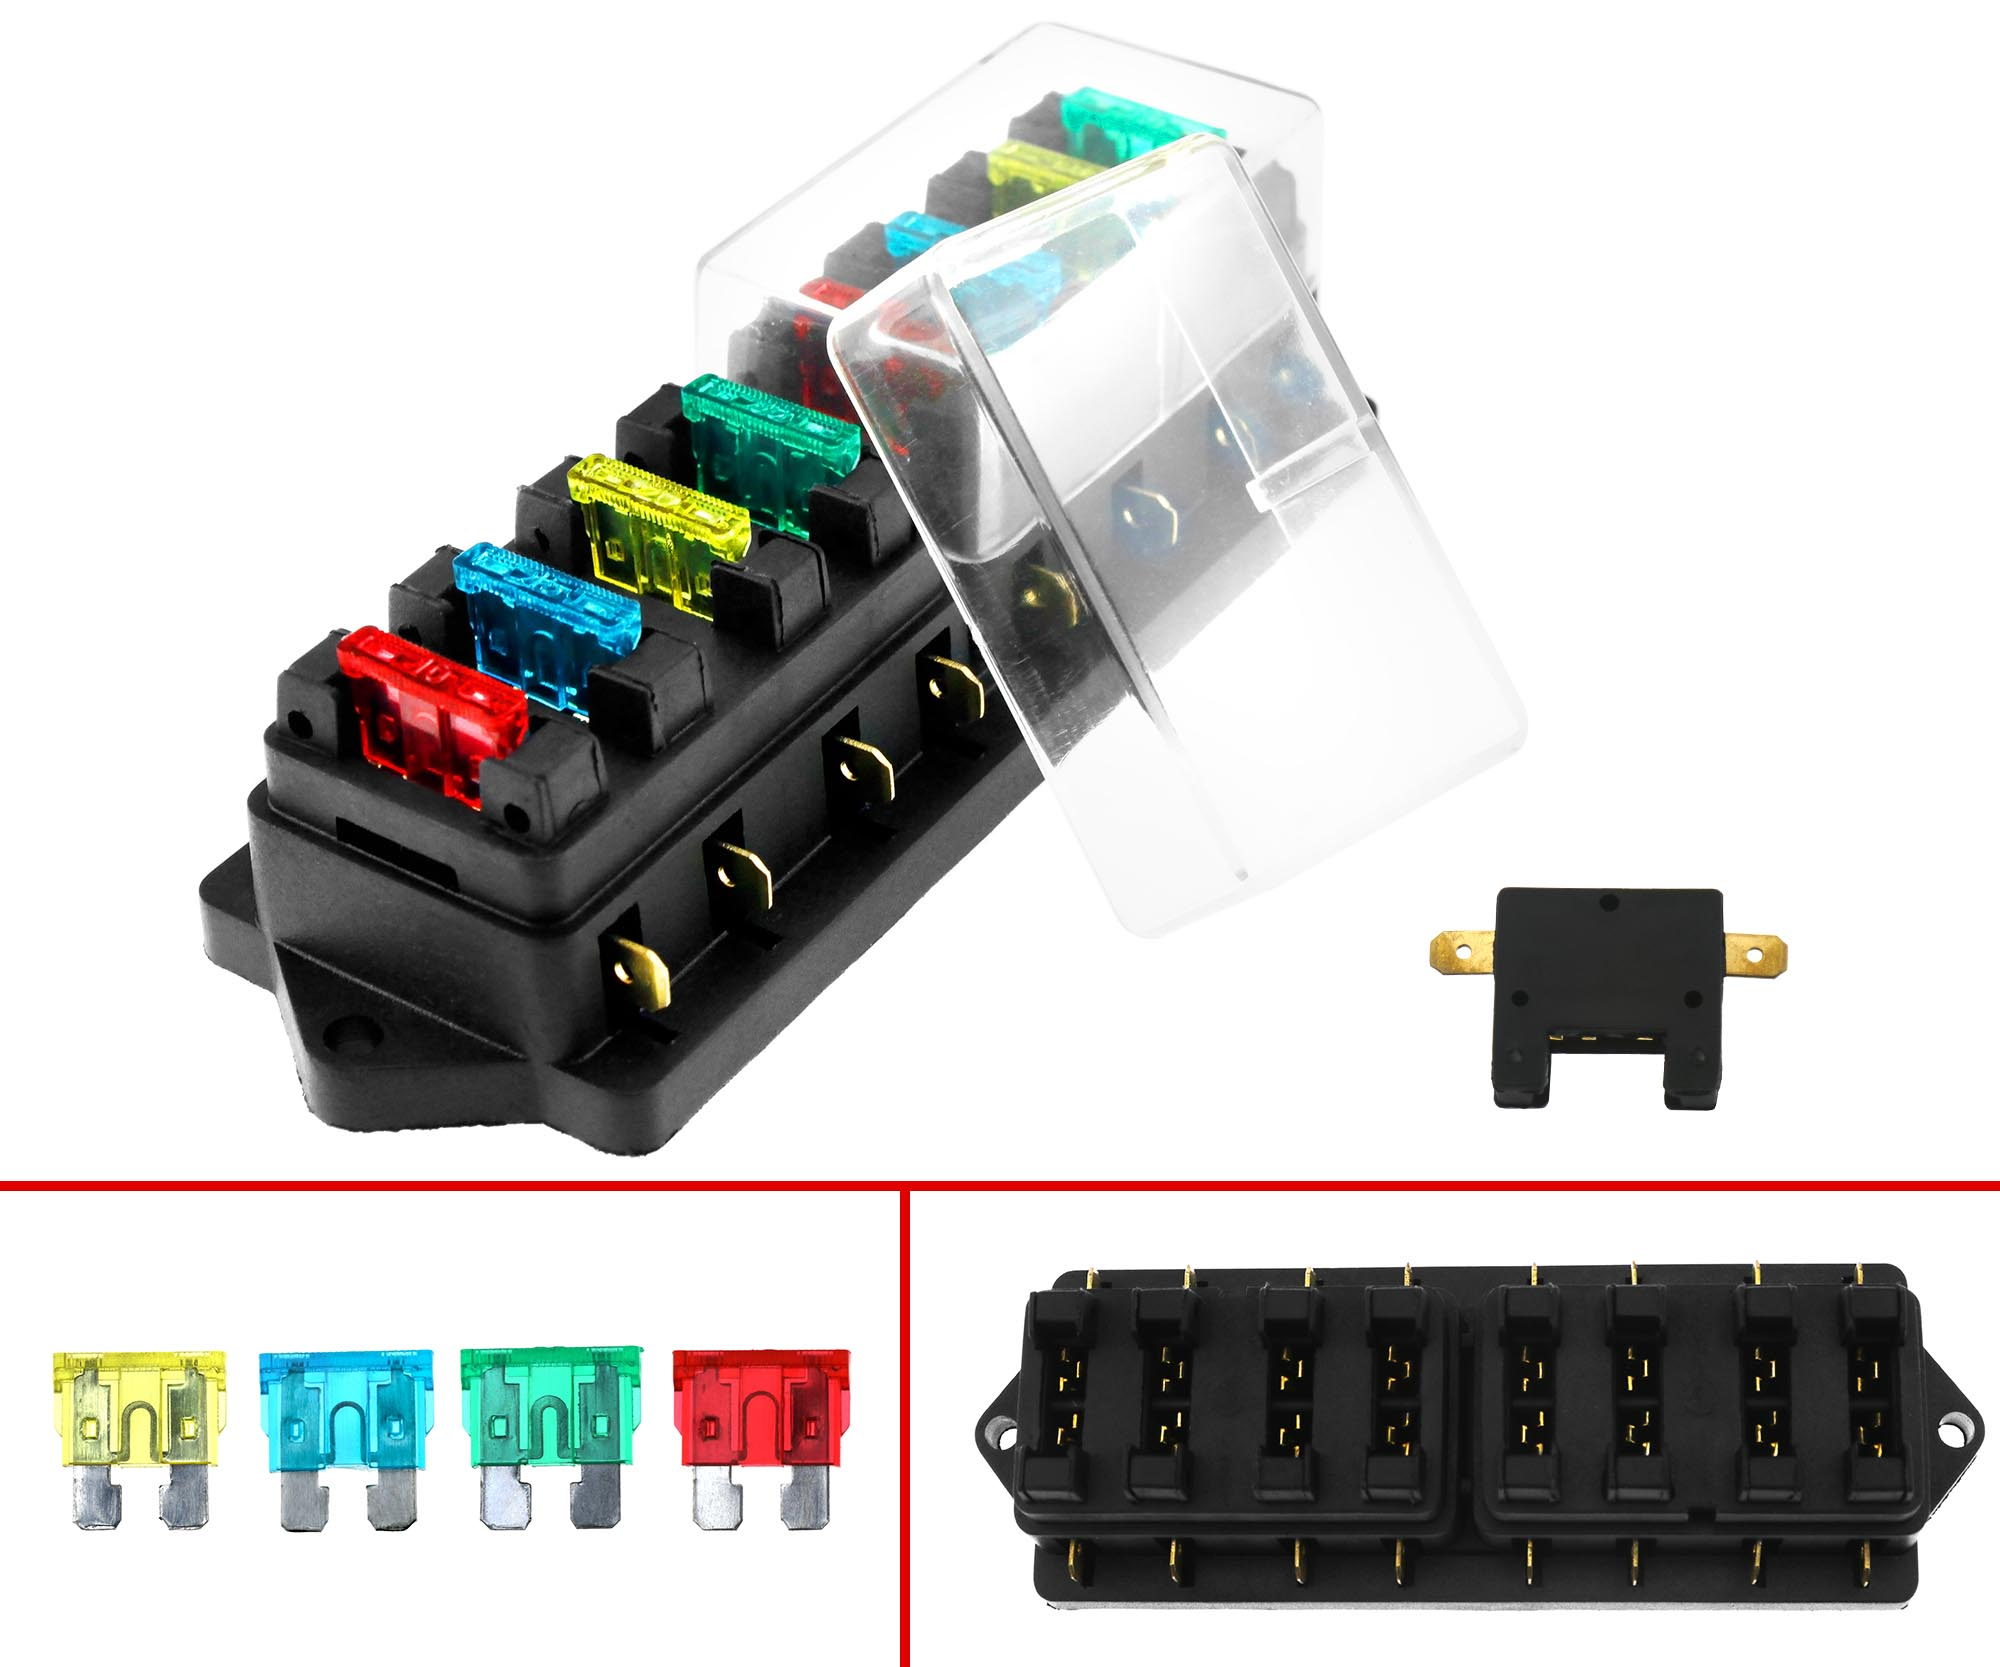 12v 24v 8 way universal car truck circuit standard blade fuse box holder block ebay. Black Bedroom Furniture Sets. Home Design Ideas